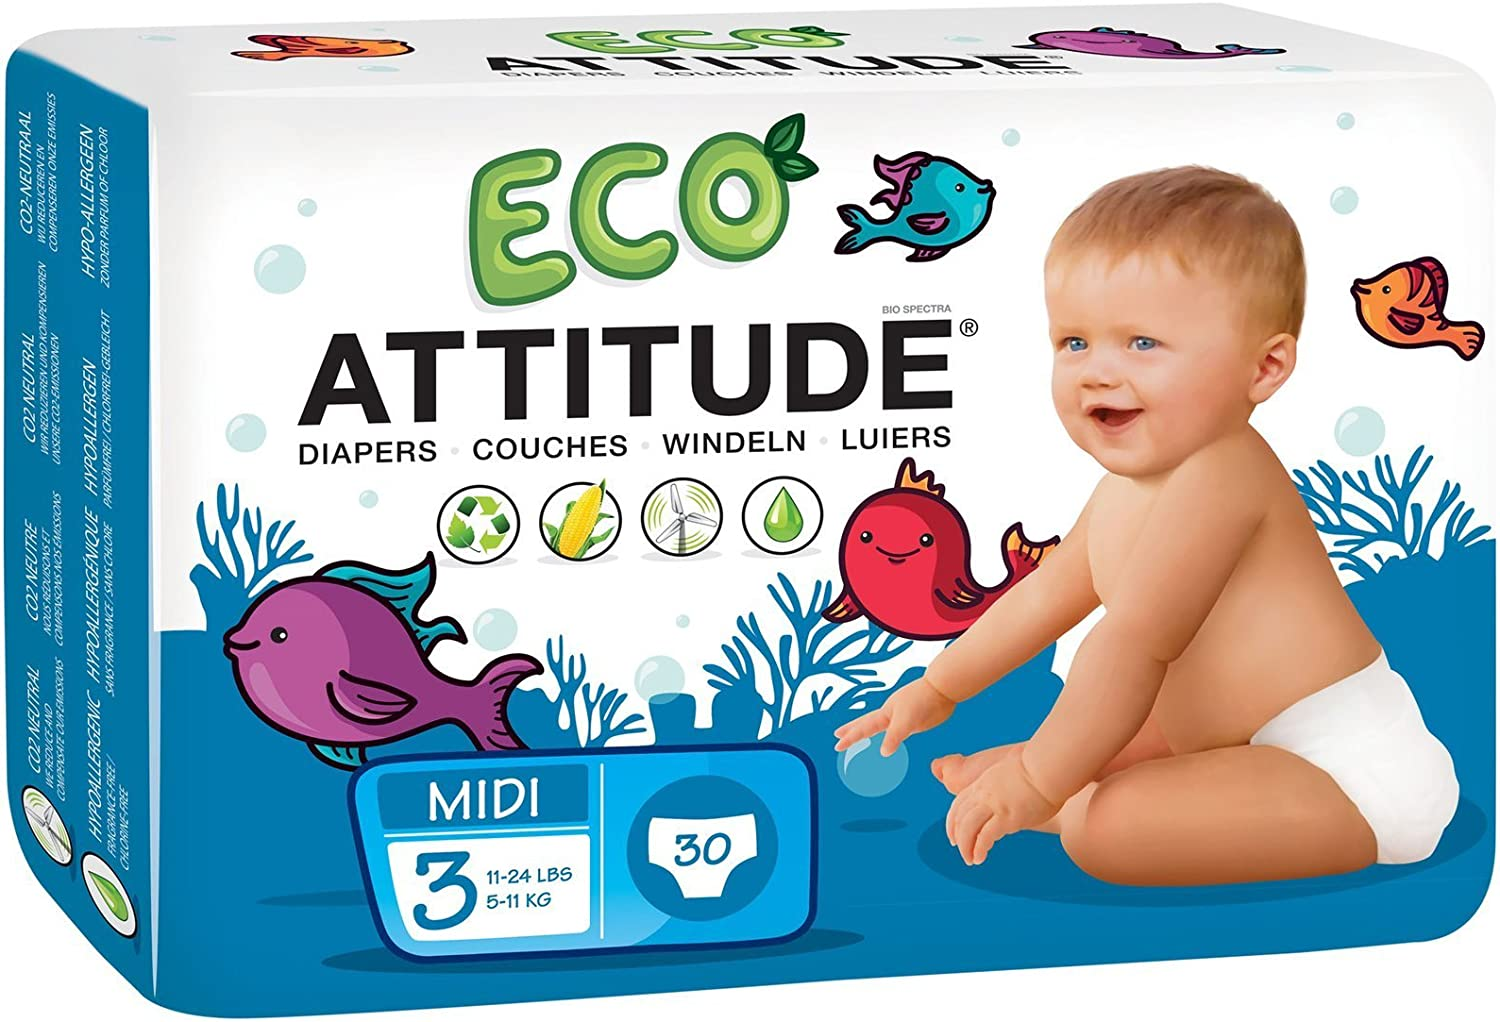 ATTITUDE Hypoallergenic Disposable Baby Diapers Maxi Size 4 26 Count